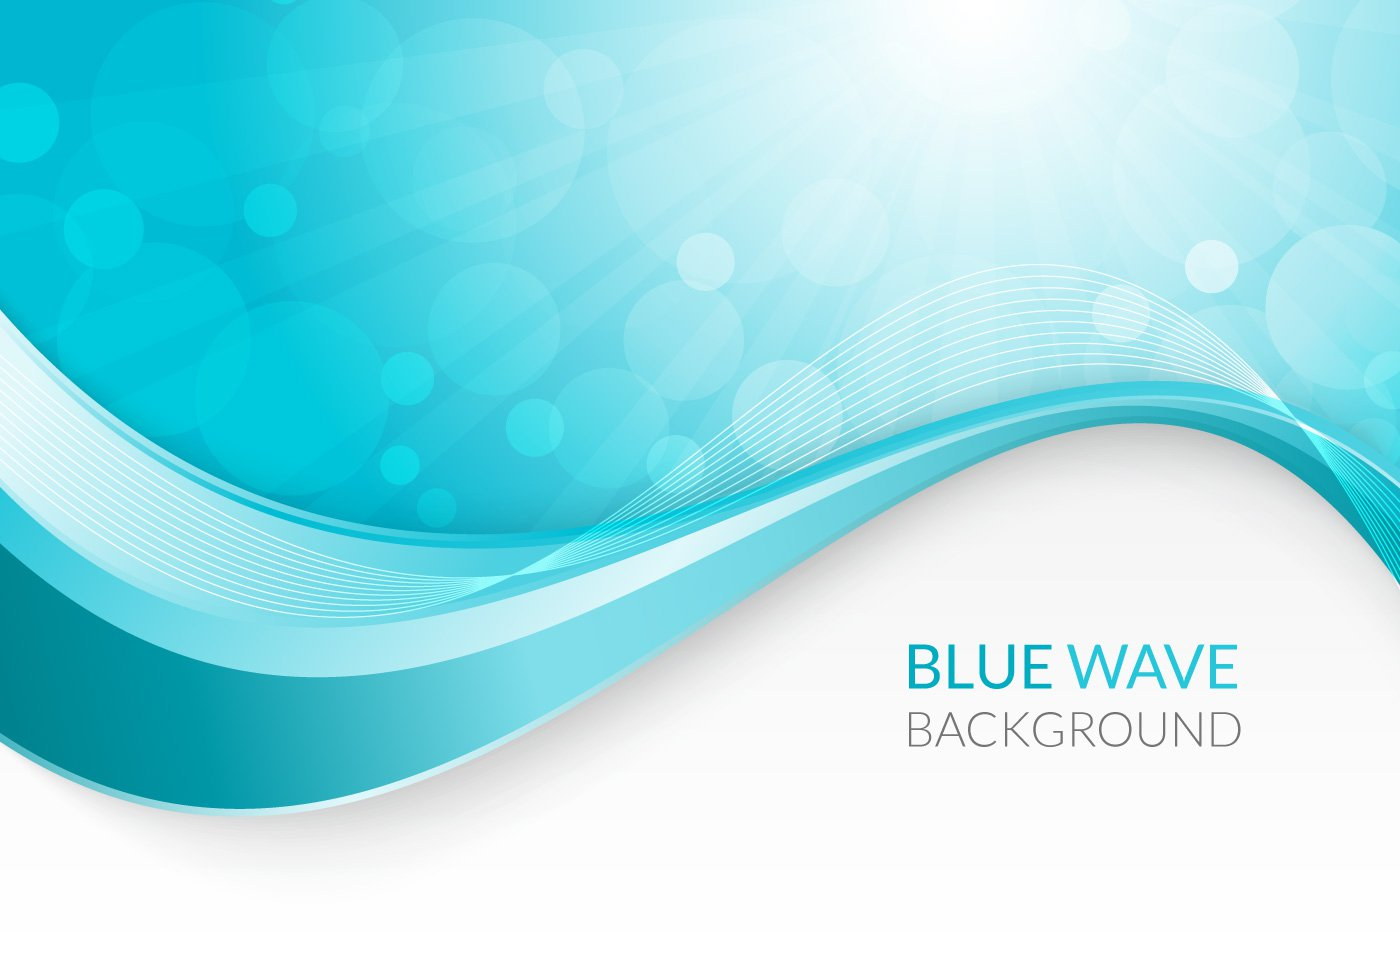 1400x980 Blue Wave Background Vector Epin Free Graphic And Wallpaper